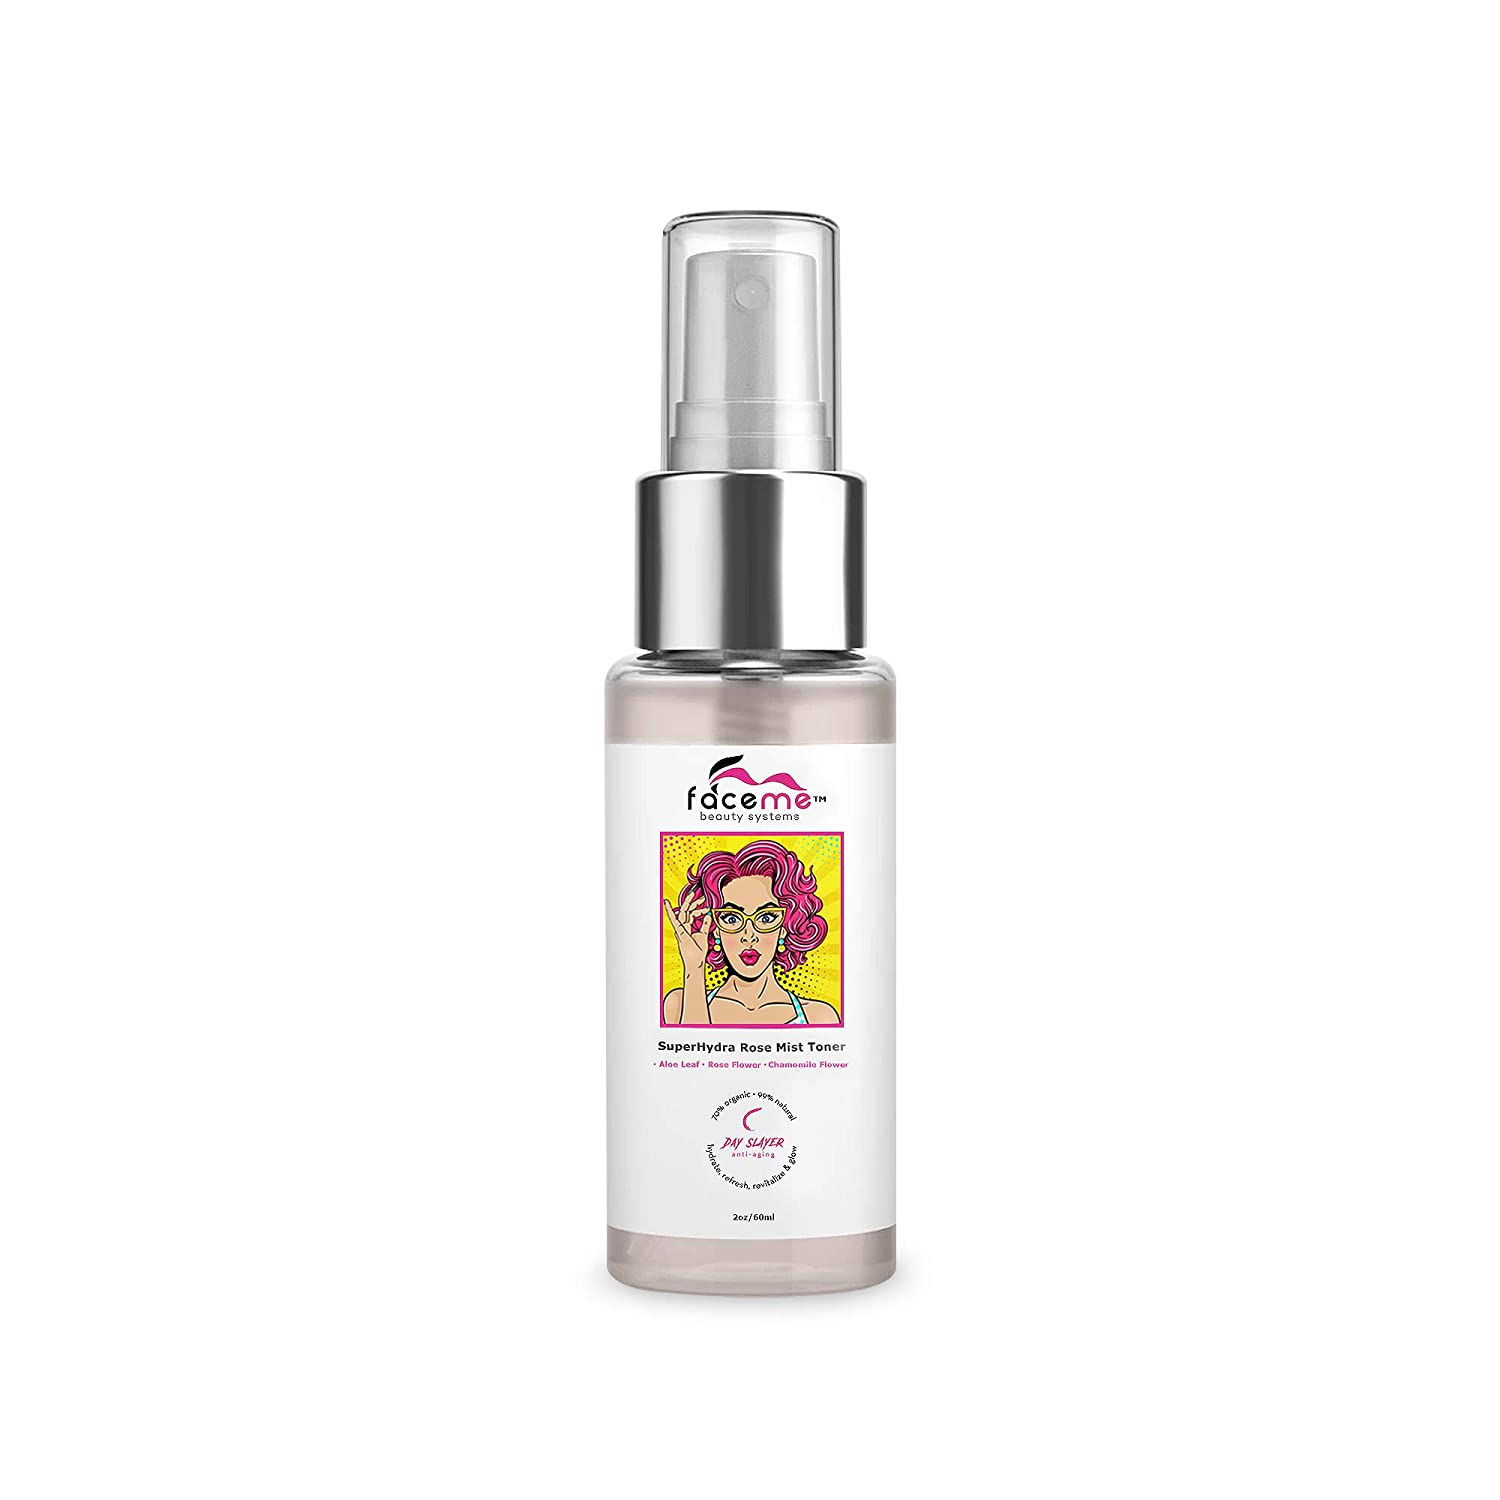 FACEME Rose Water Facial Toner - Face Mist with Witch Hazel and Aloe Vera - Alcohol-Free Rosewater Face Toner Spray - Organic Rose Petals Face Spray - Refresh & Tone on-the-Go, 2oz